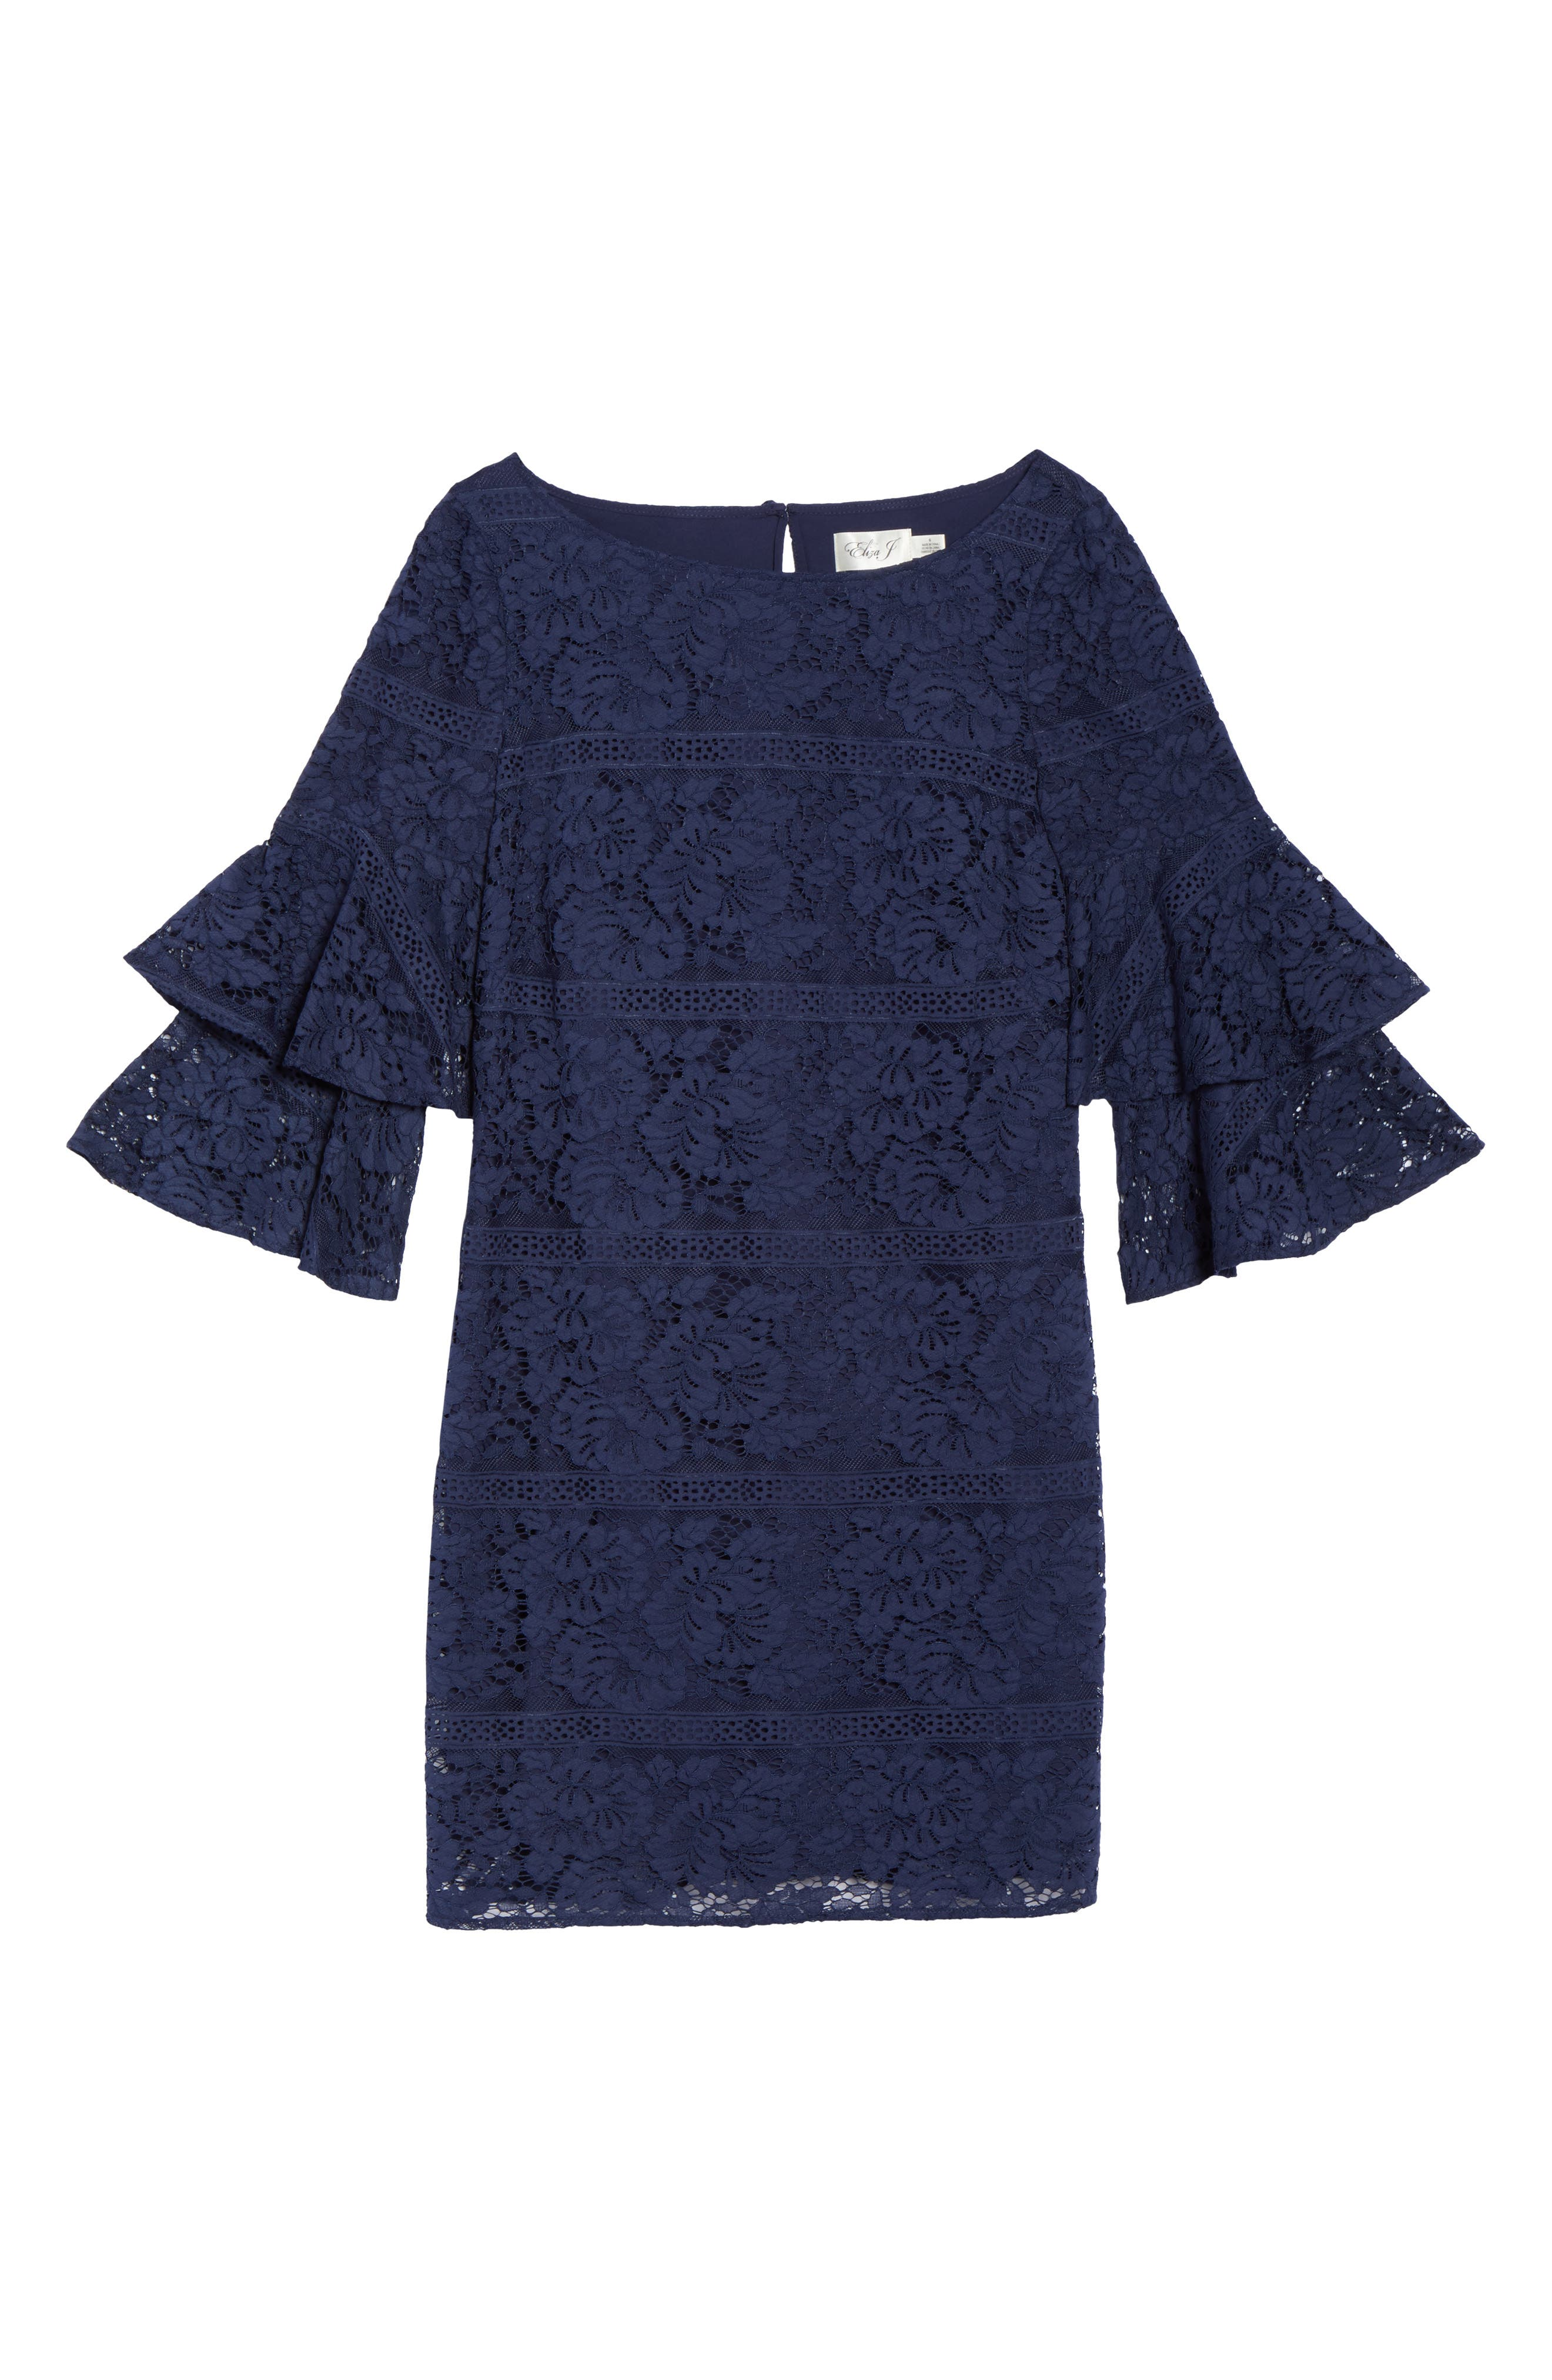 Tiered Sleeve Lace Shift Dress,                             Alternate thumbnail 6, color,                             Navy